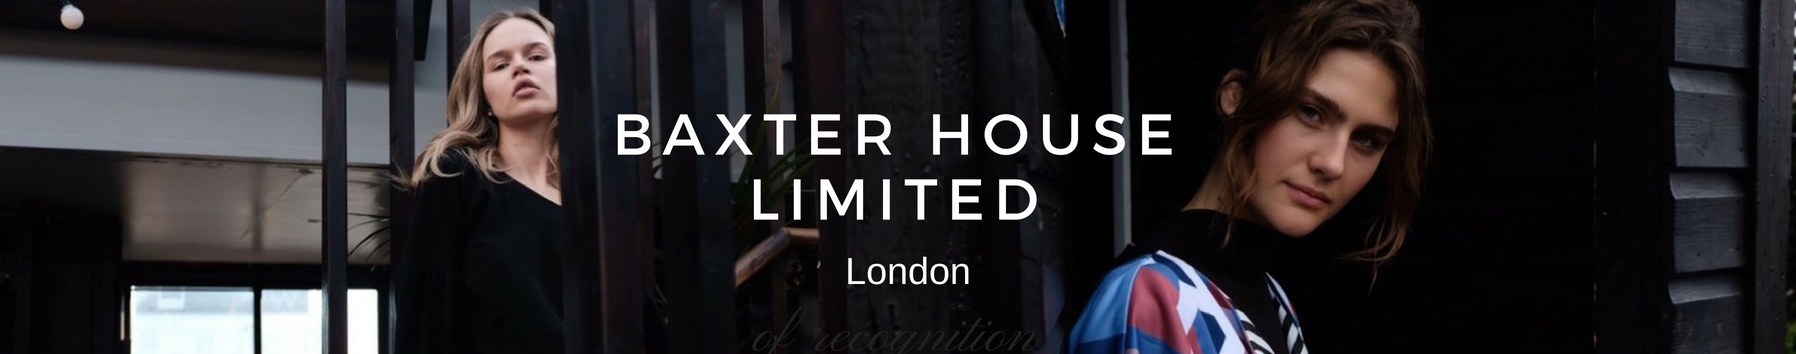 Baxter House Limited